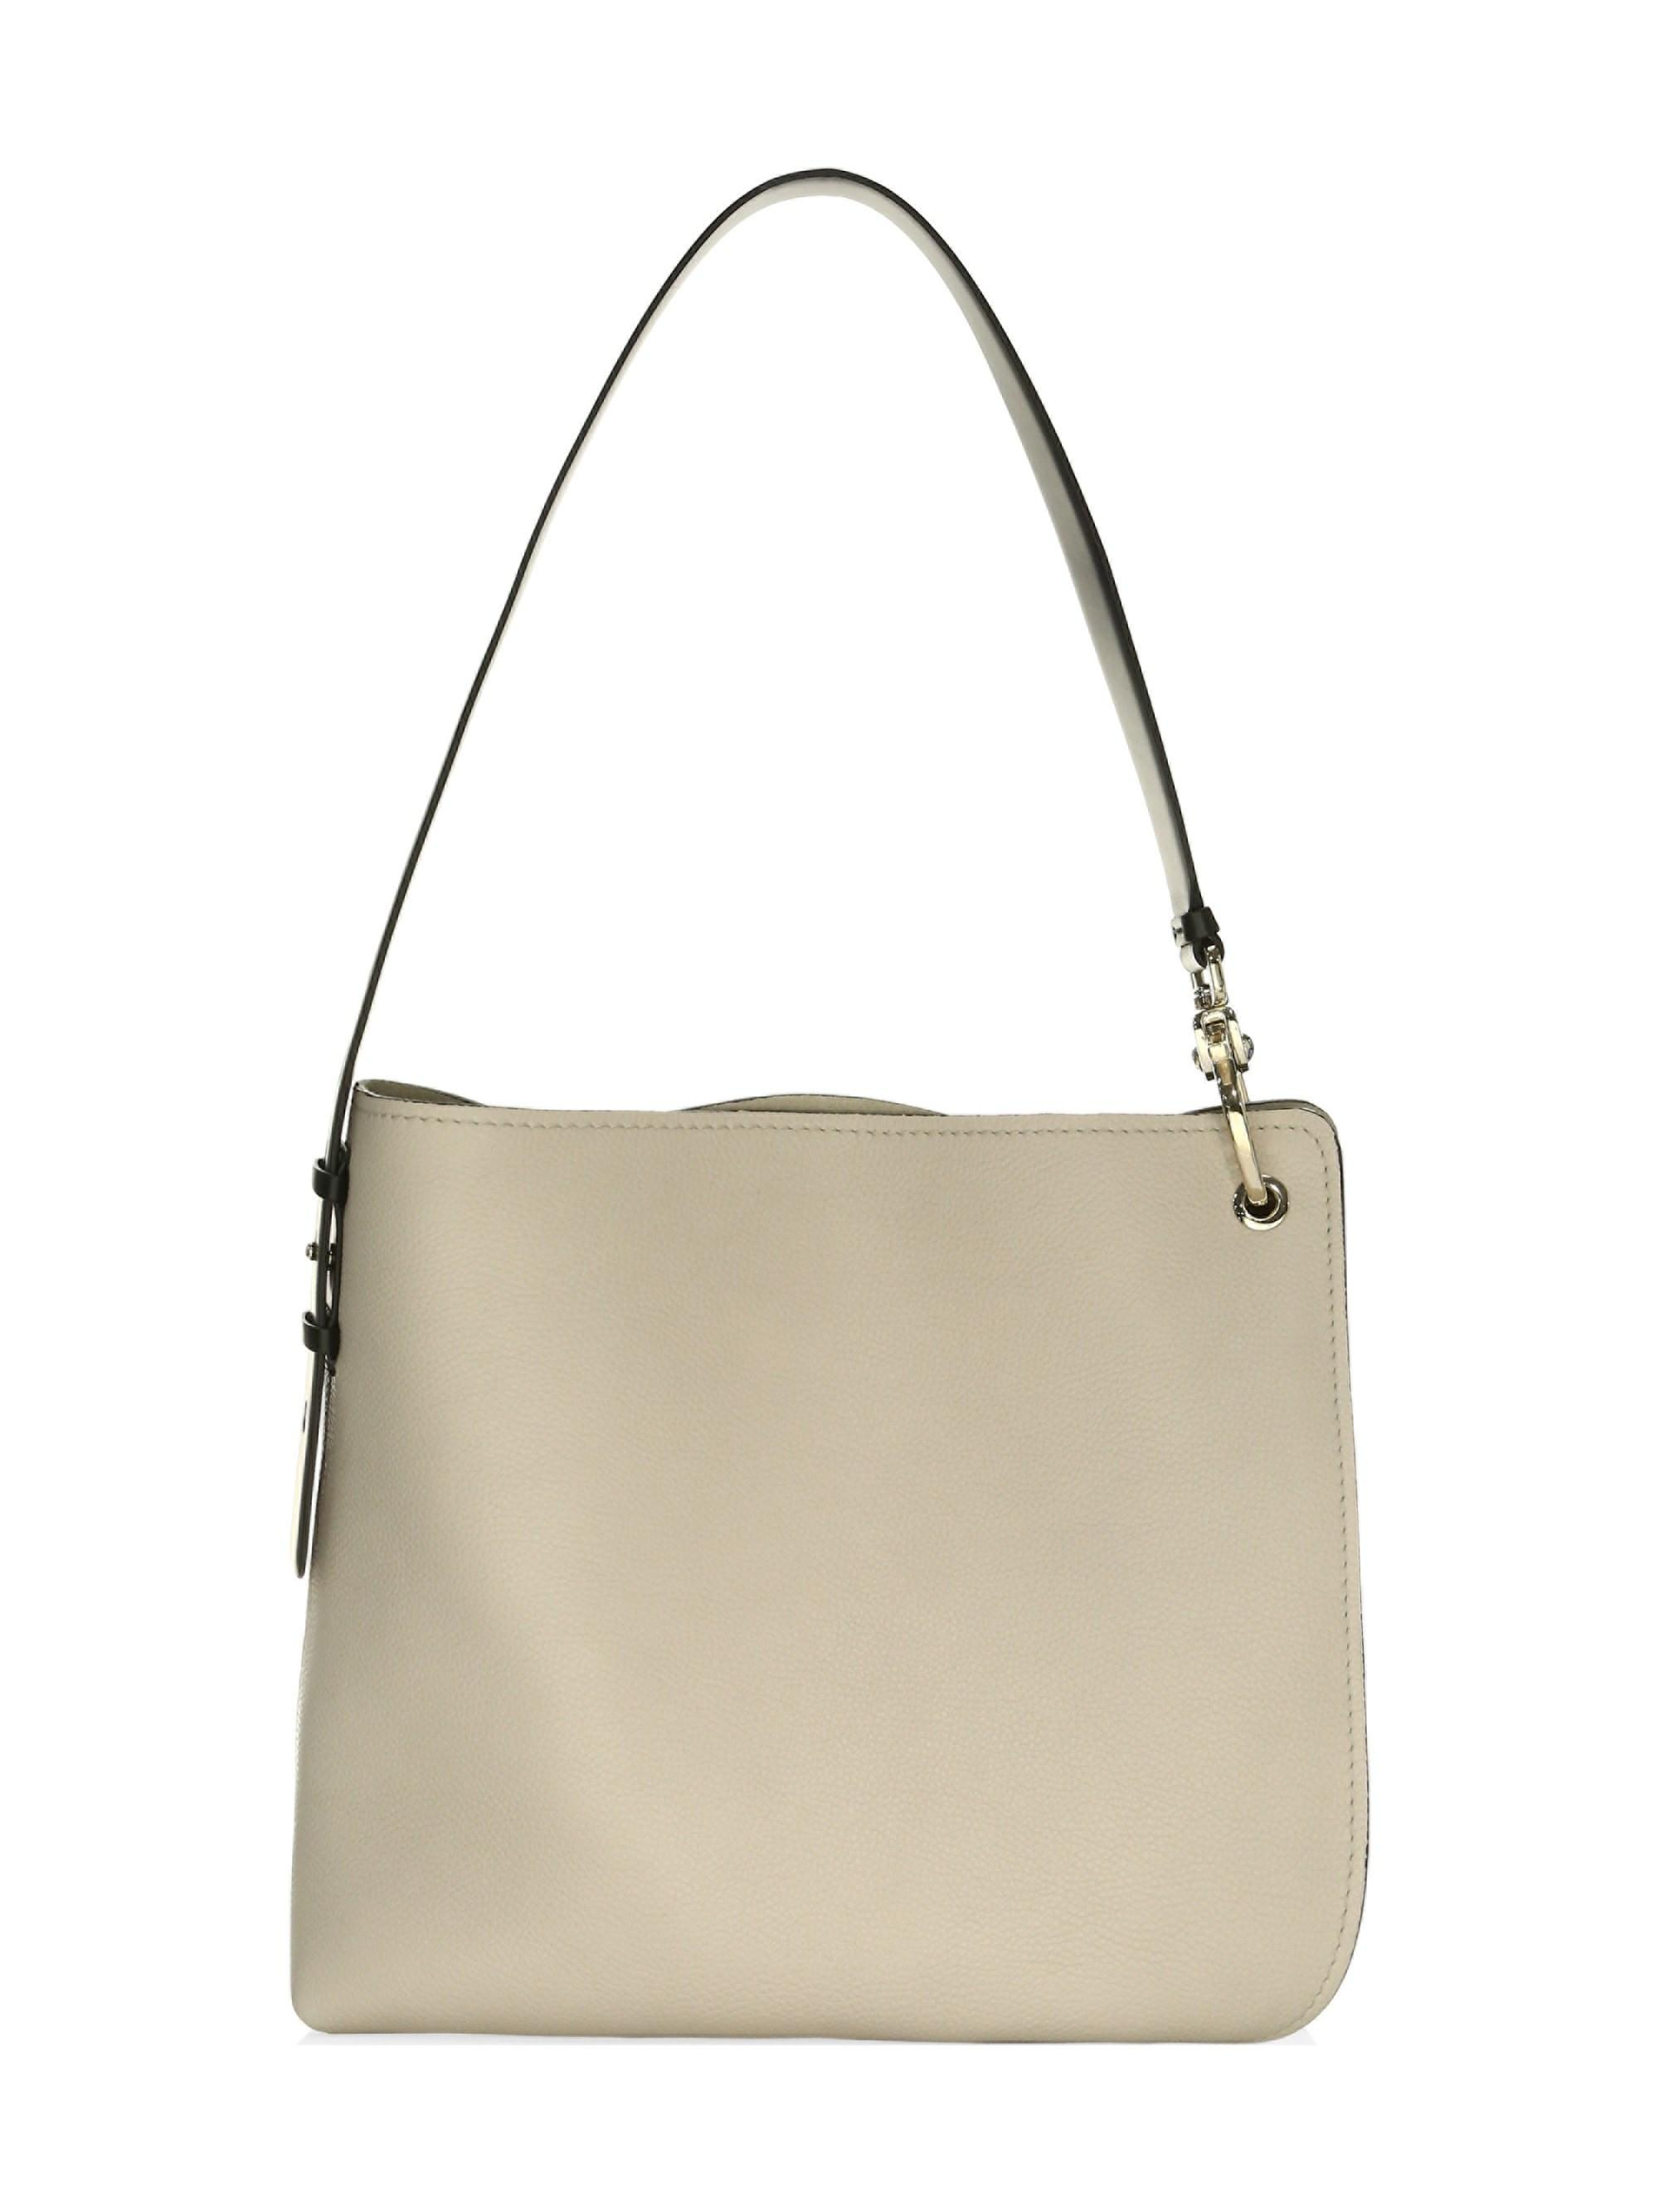 45693aa9ac0b Ferragamo. Women s Medium Minerva Leather Hobo Bag